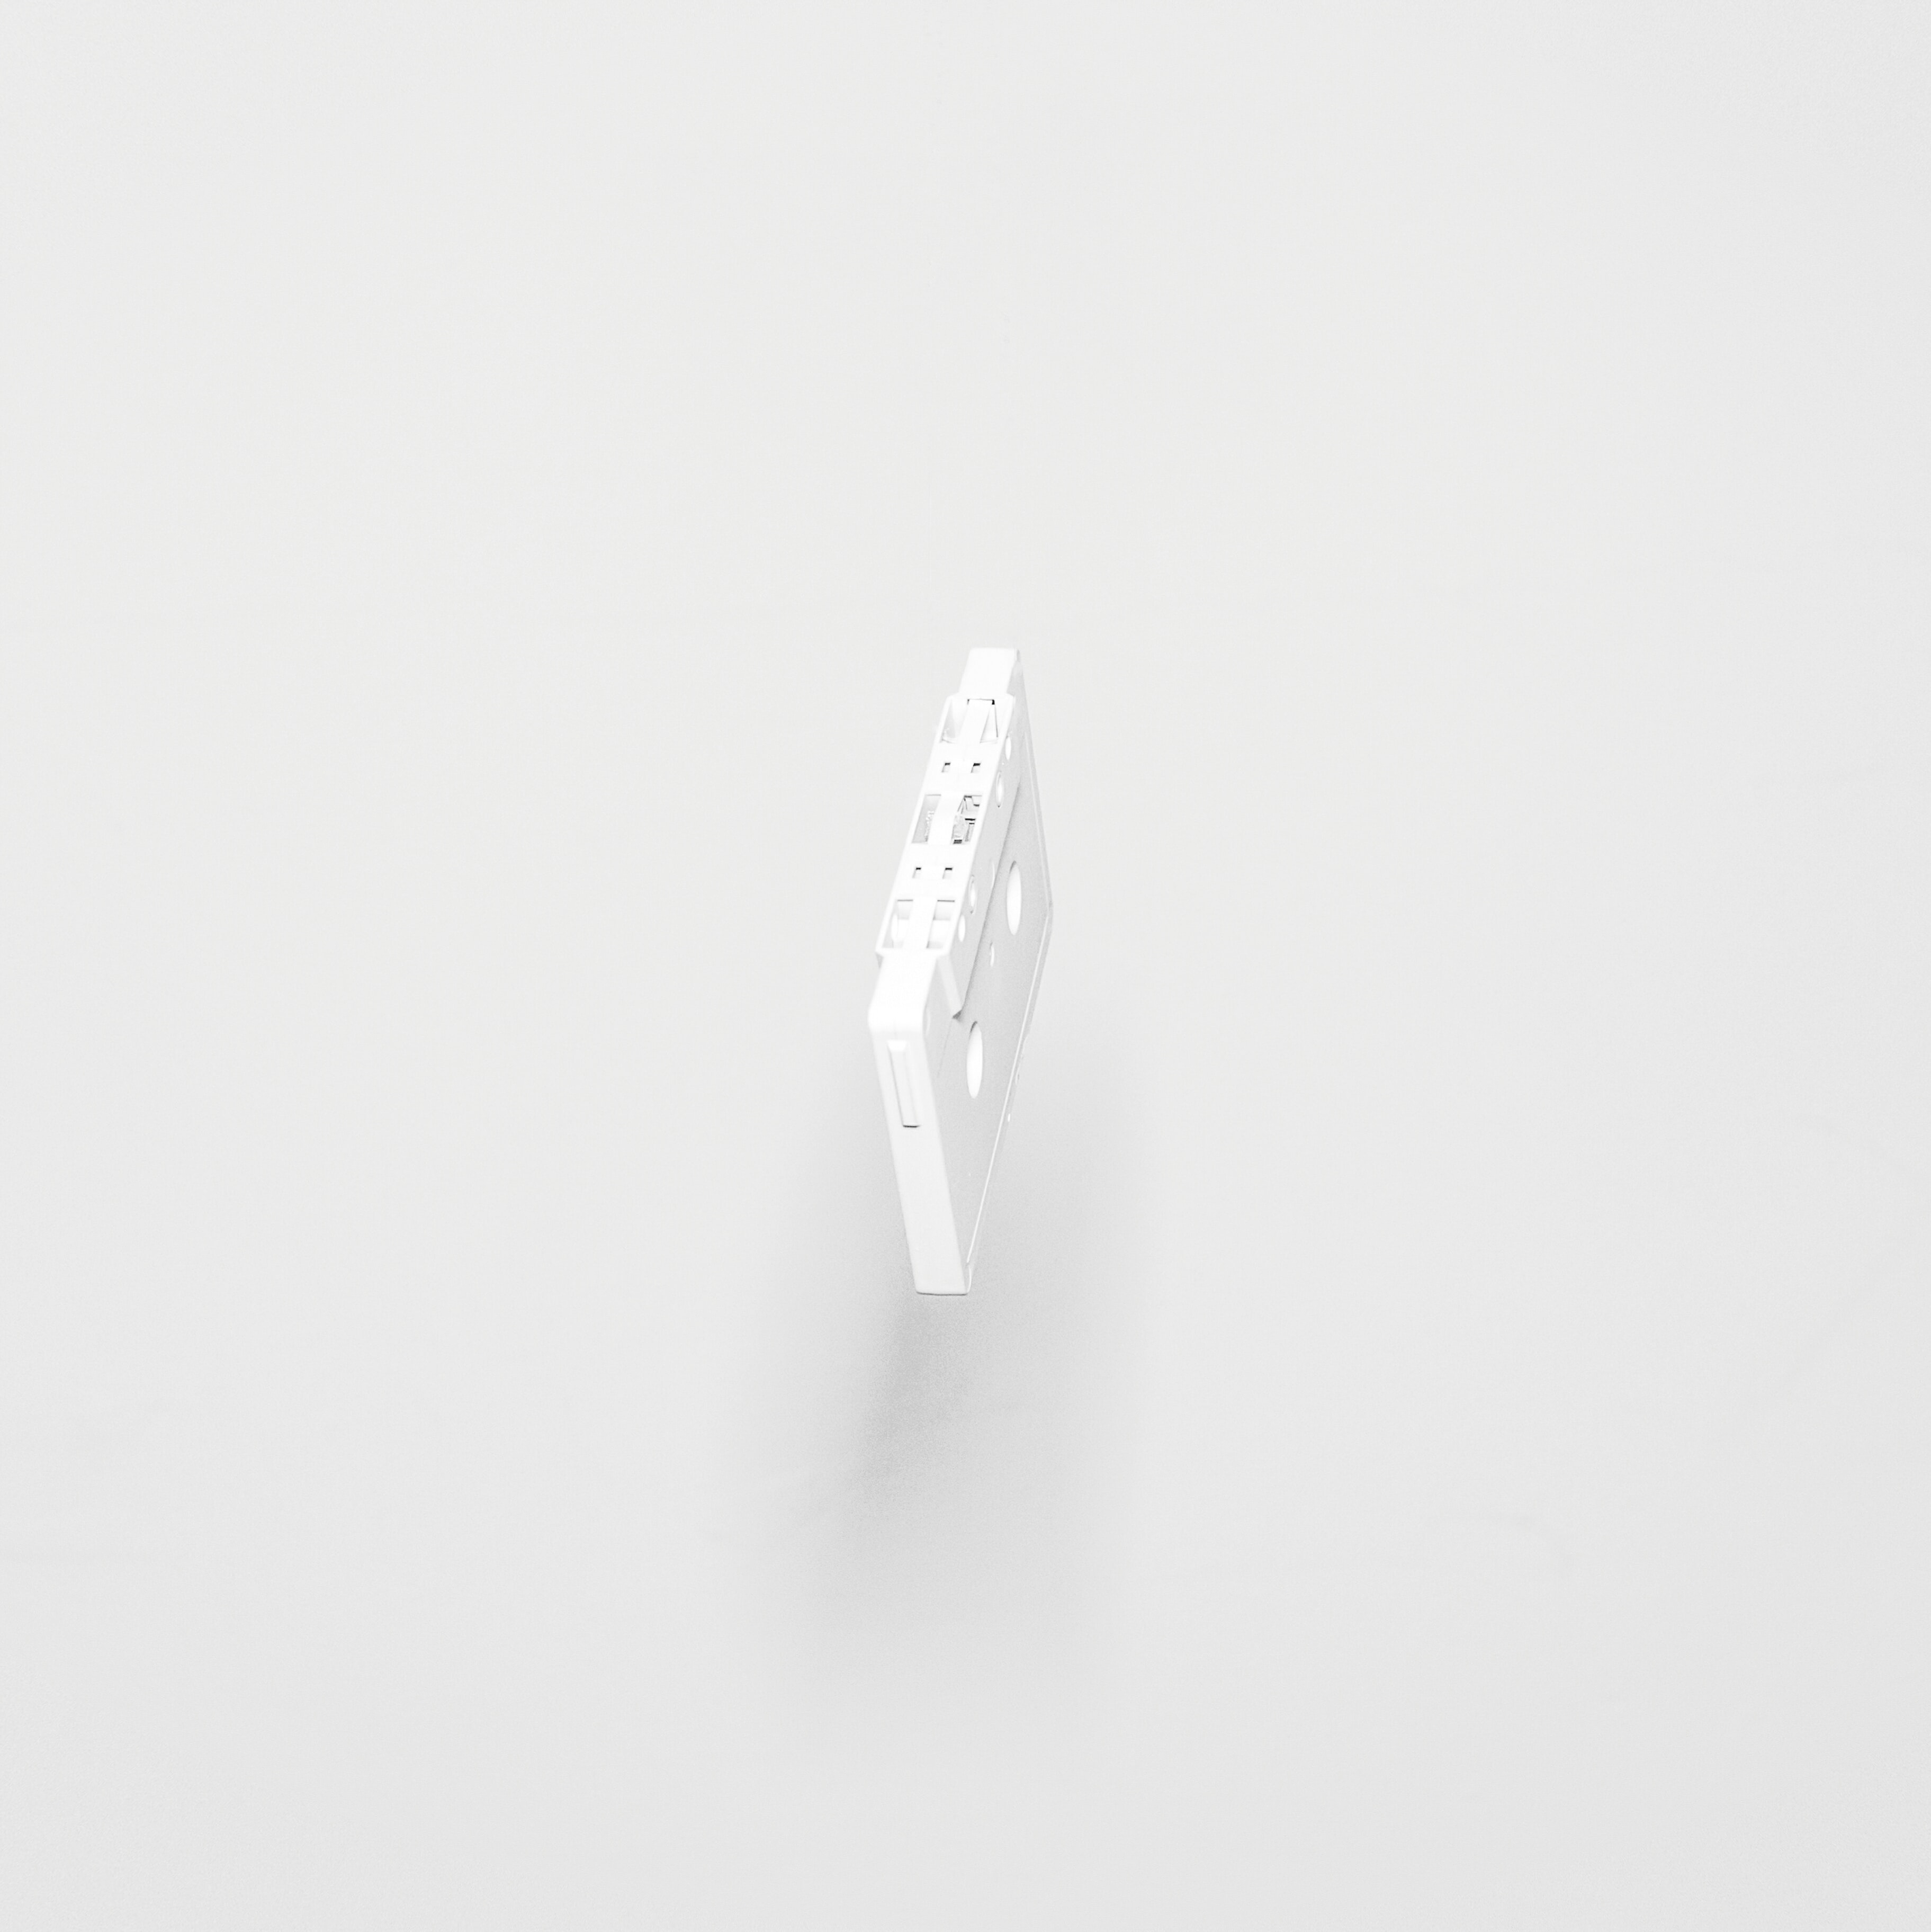 A white cassette tape suspended in the air above a white surface